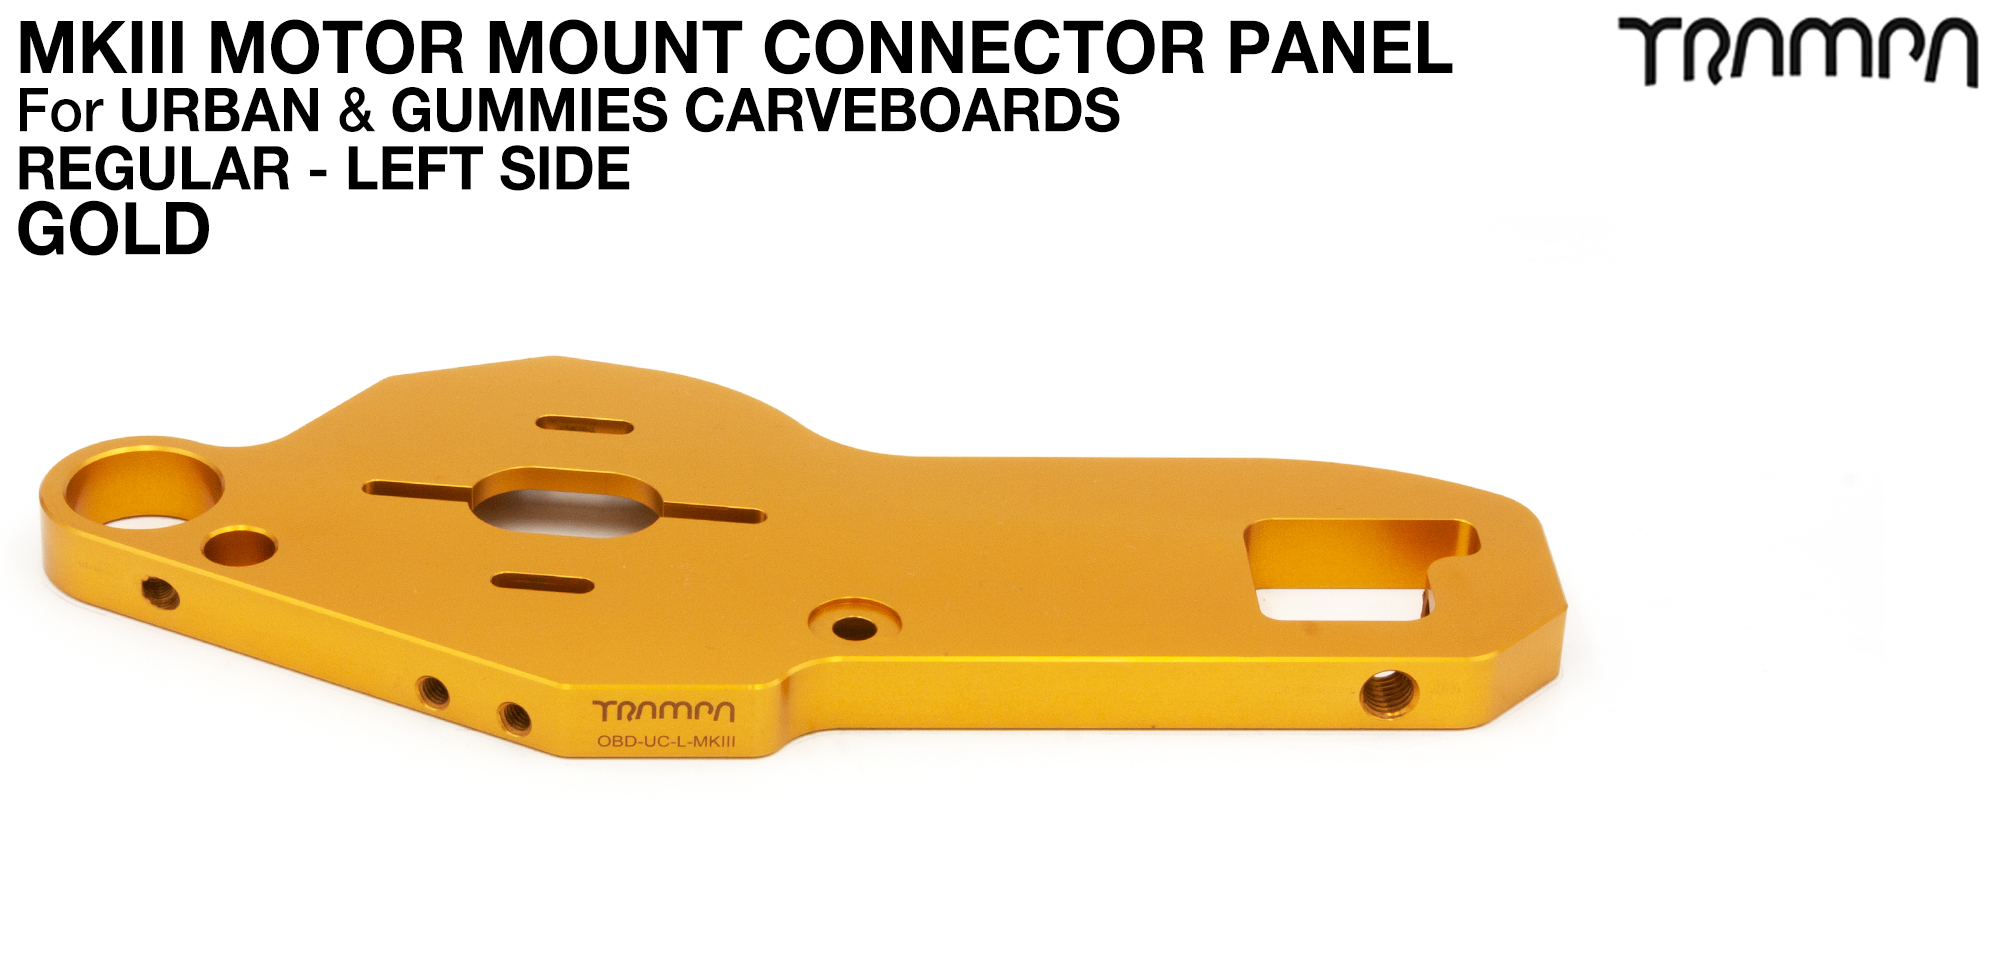 URBAN CARVE Motor Mount - REGULAR GOLD